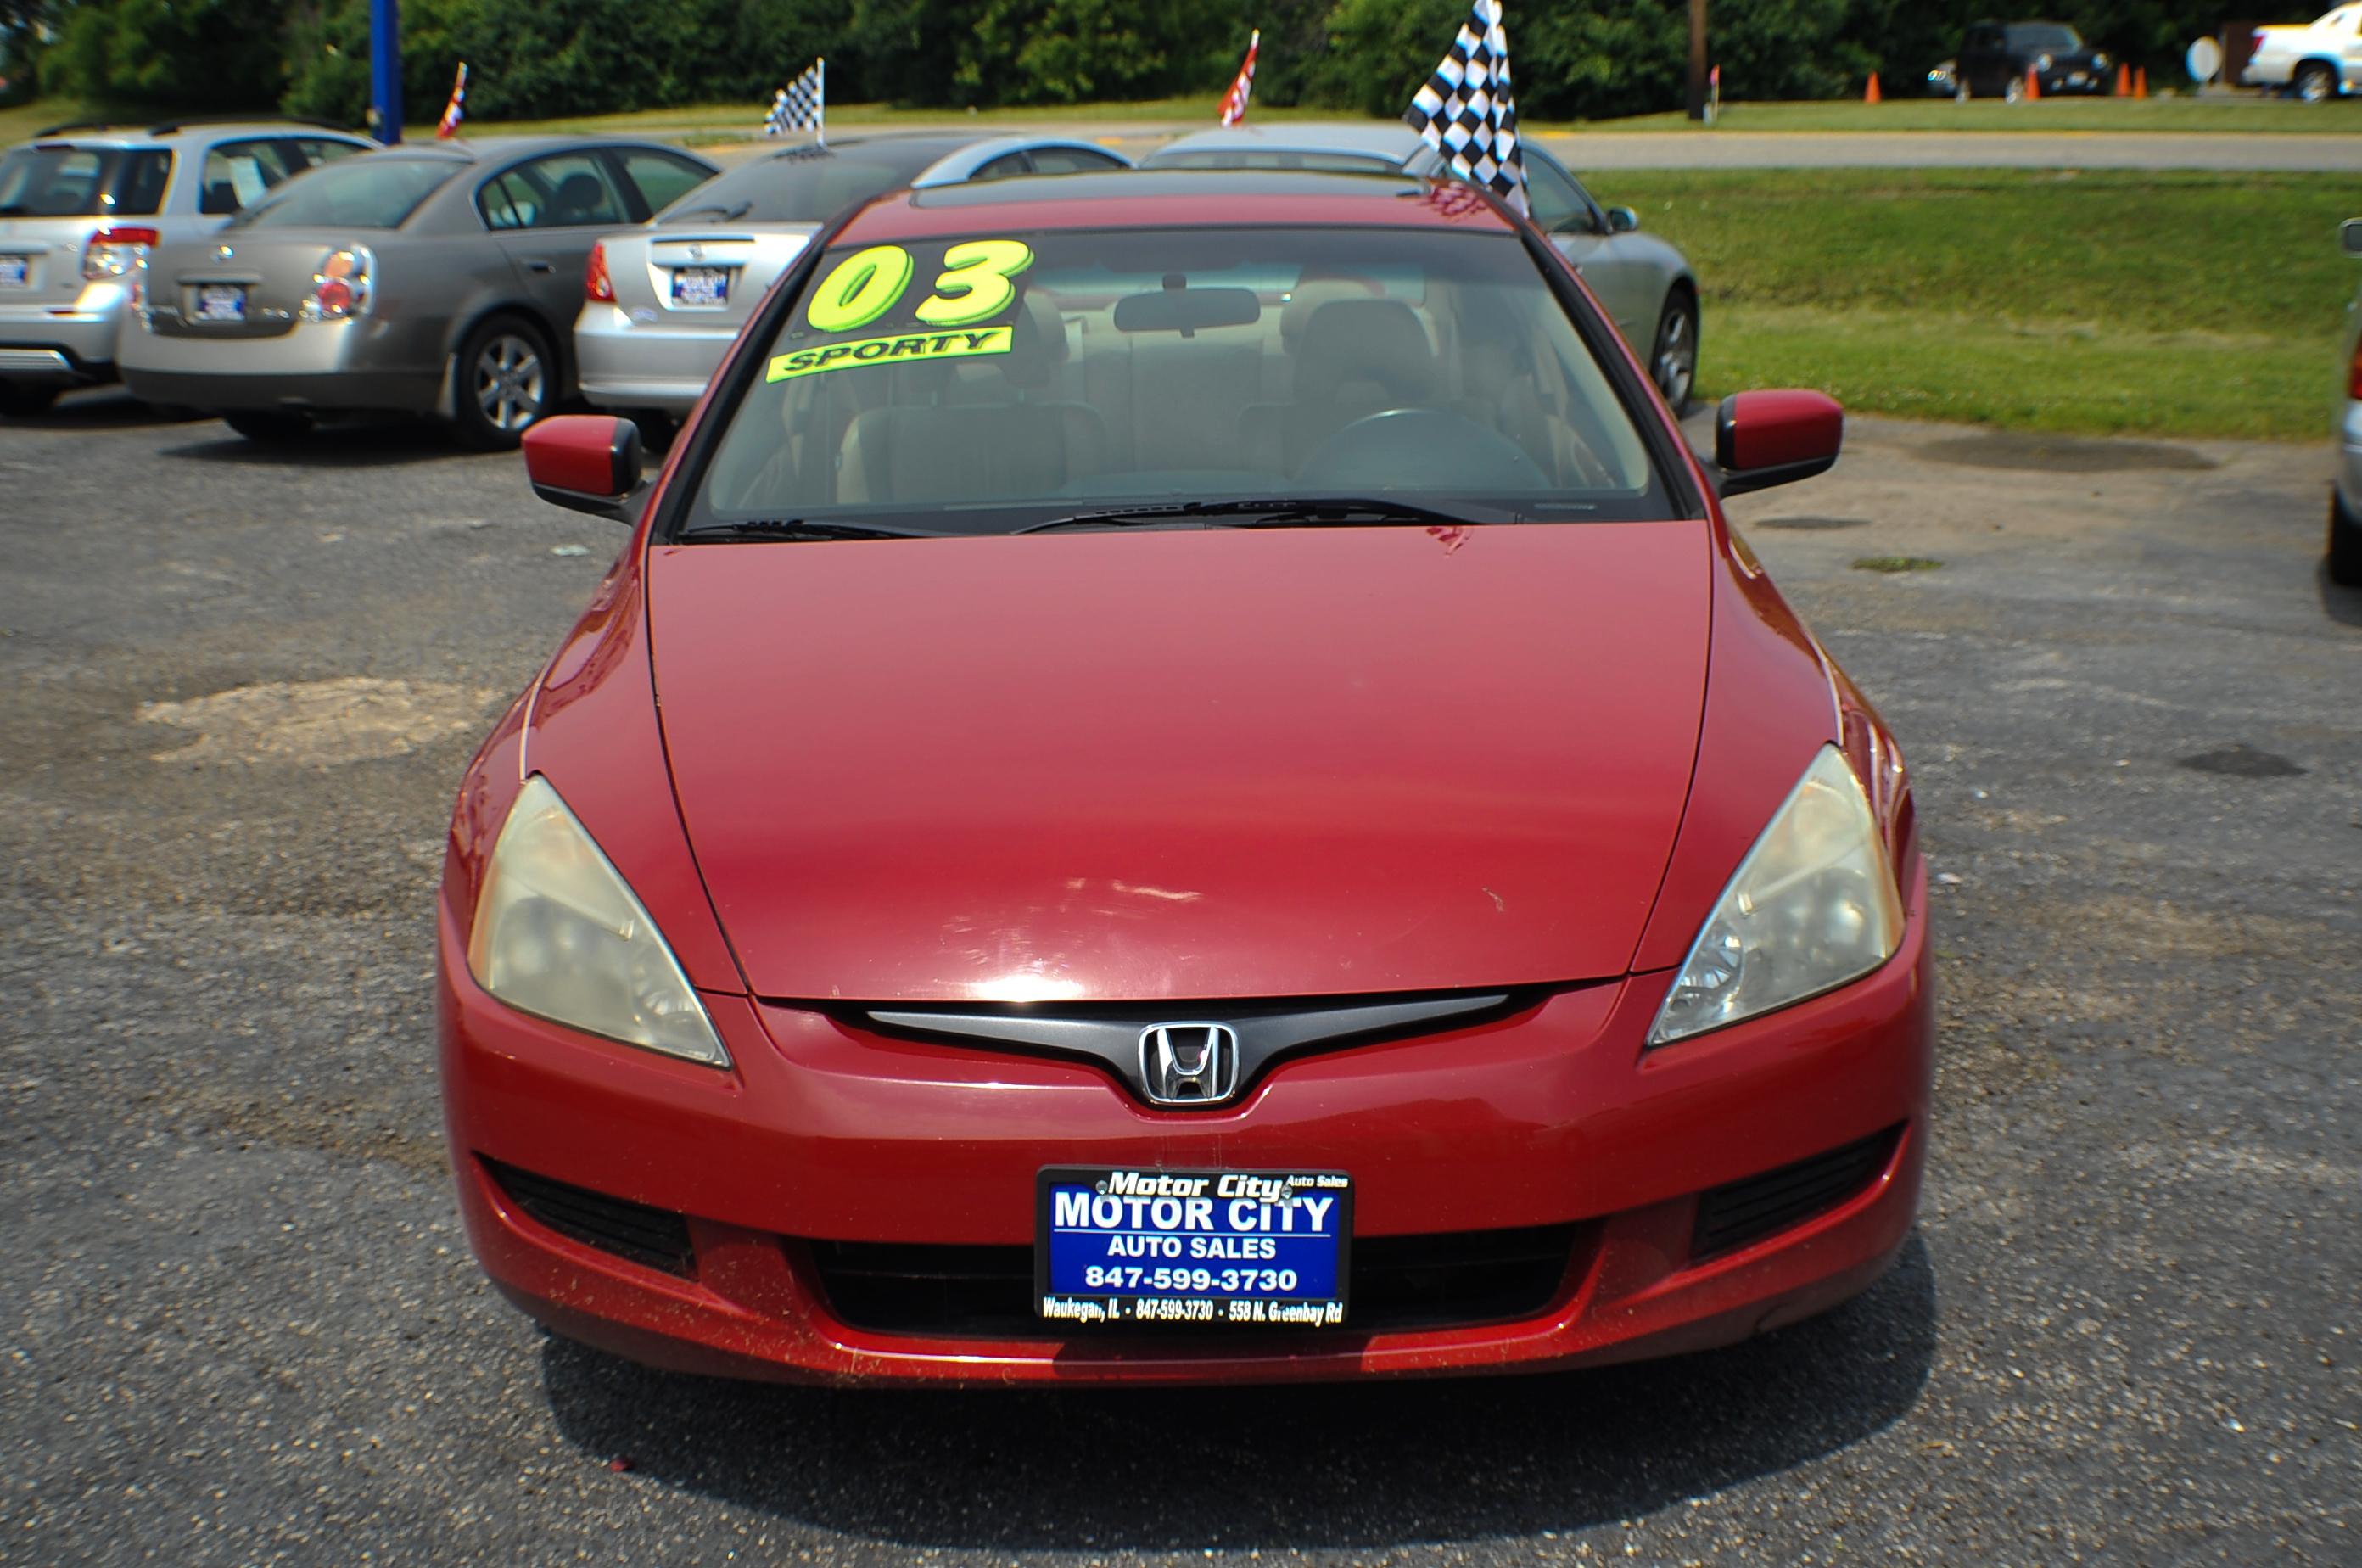 Honda Accord Sport For Sale >> 2003 Honda Accord Red V6 Sport Coupe Used Car Sale